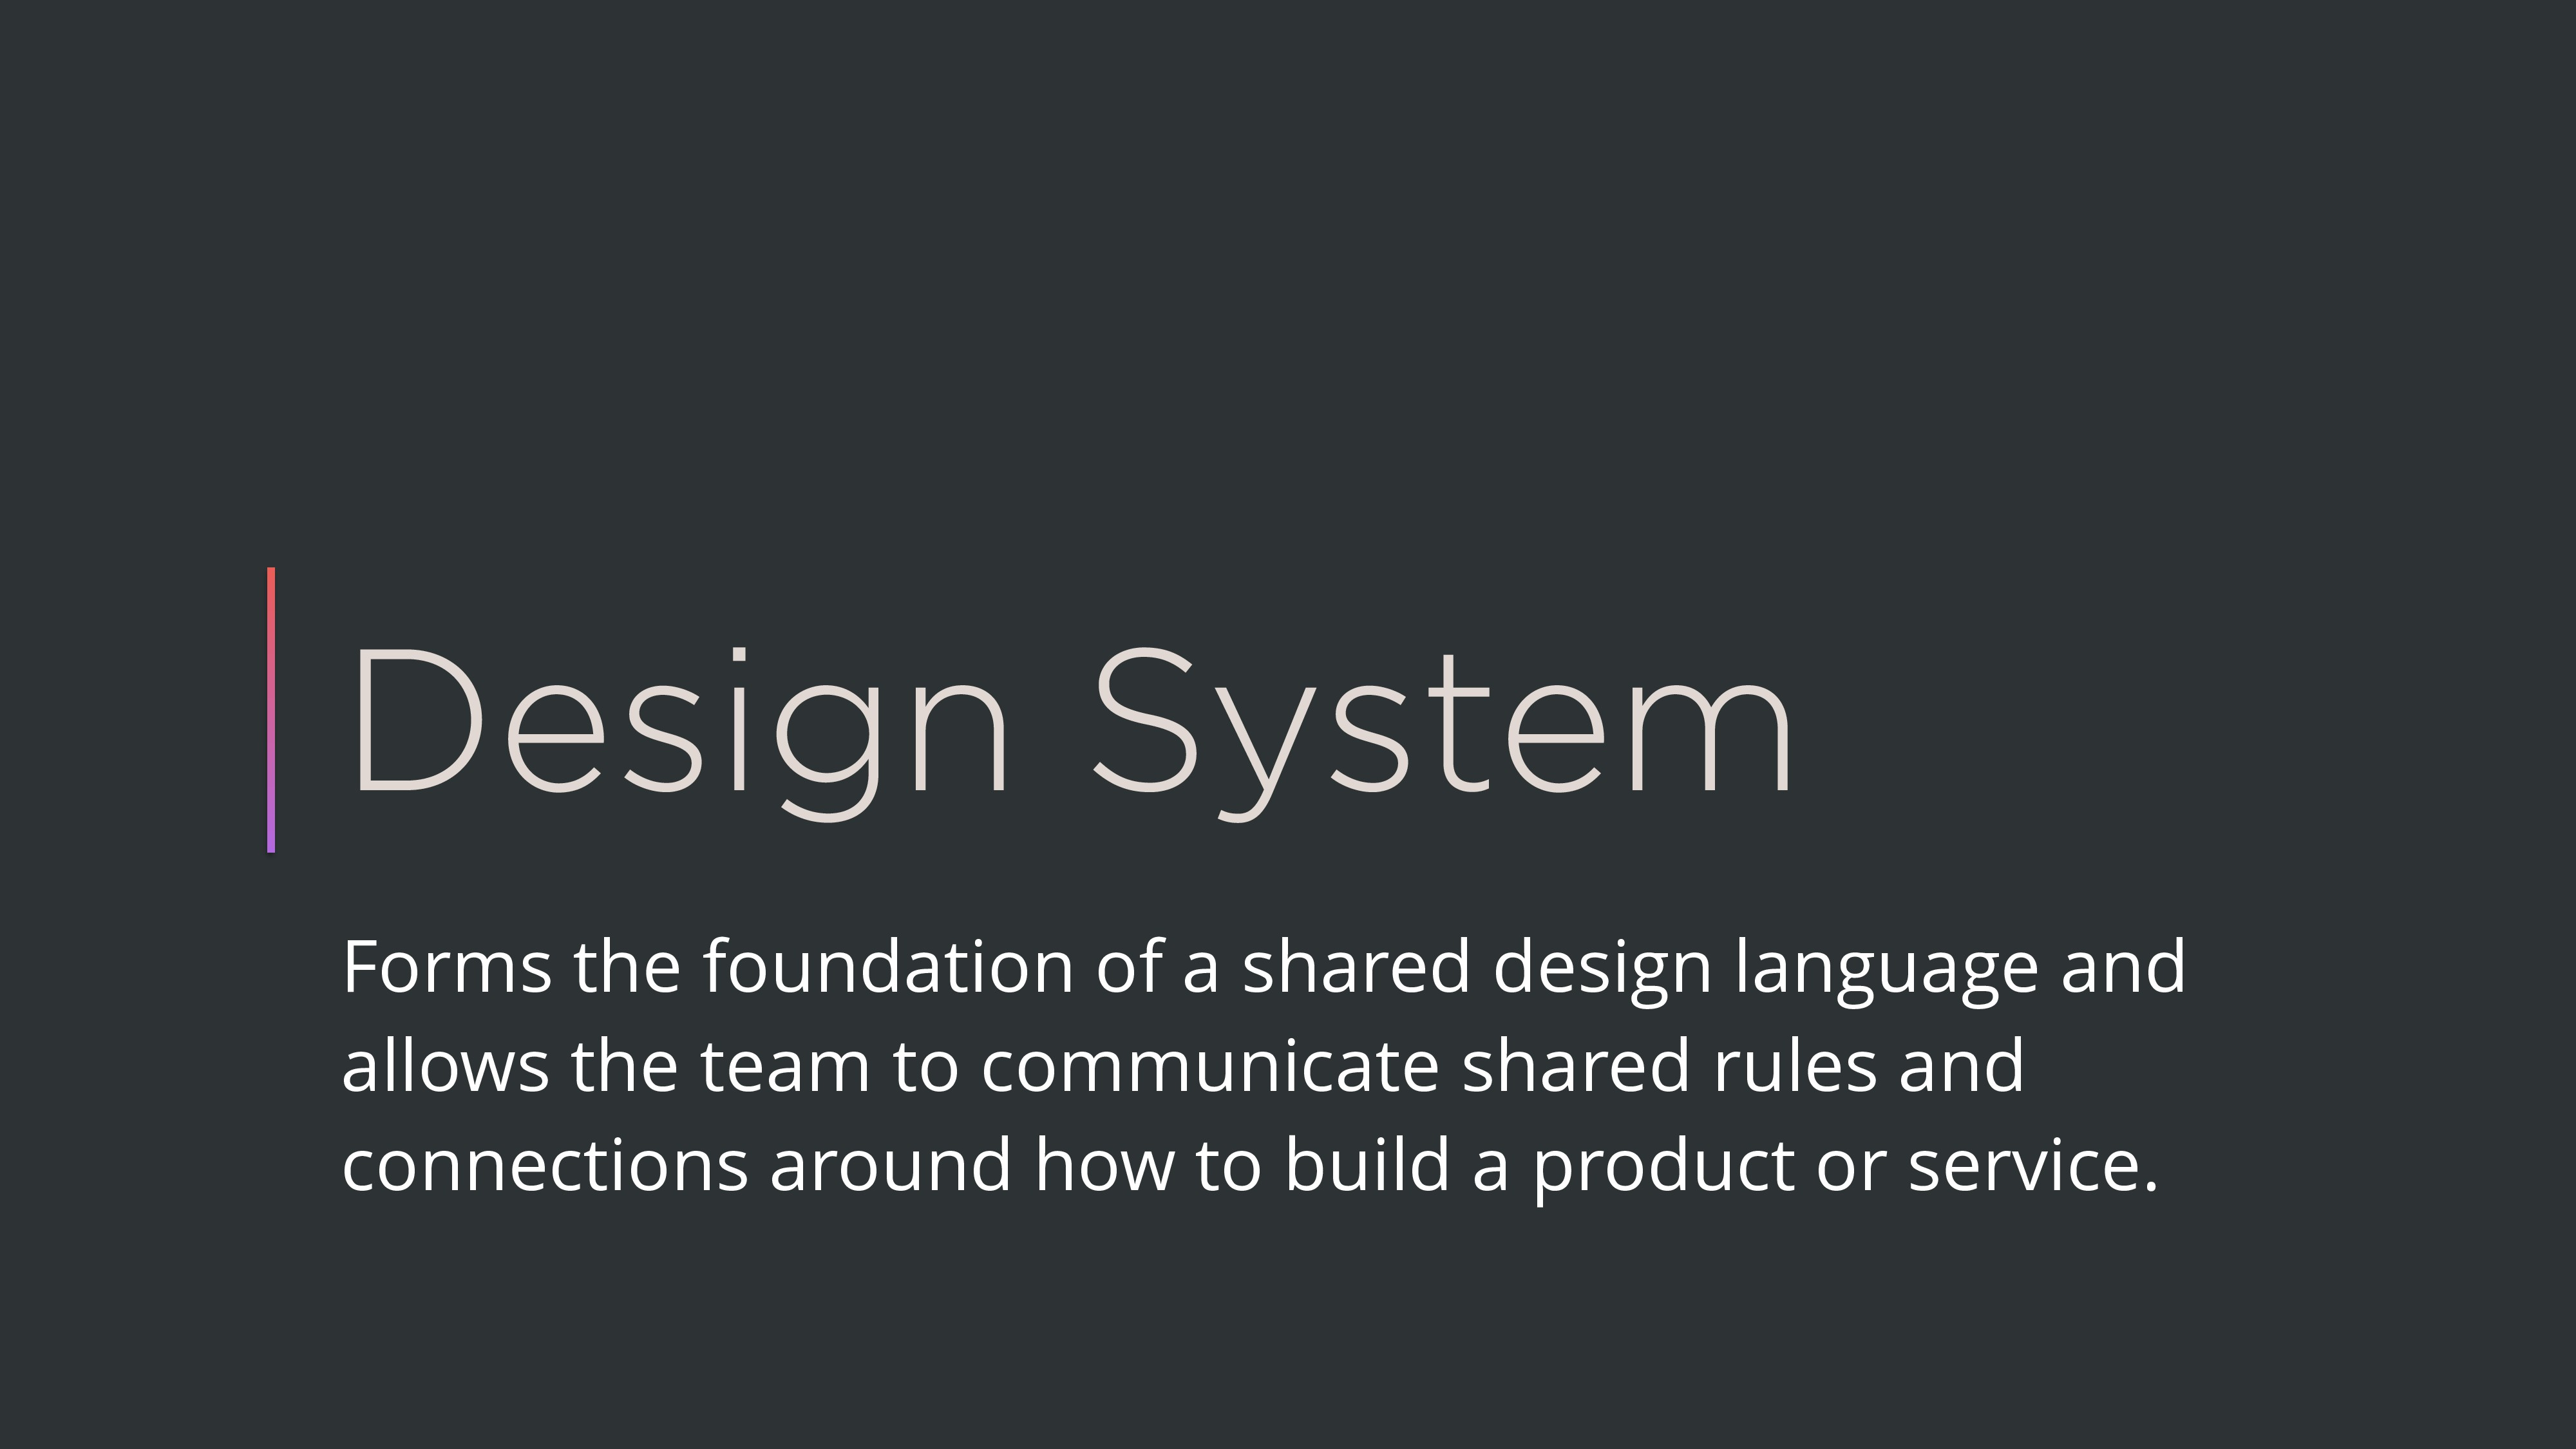 Design System Forms the foundation of a shared ...